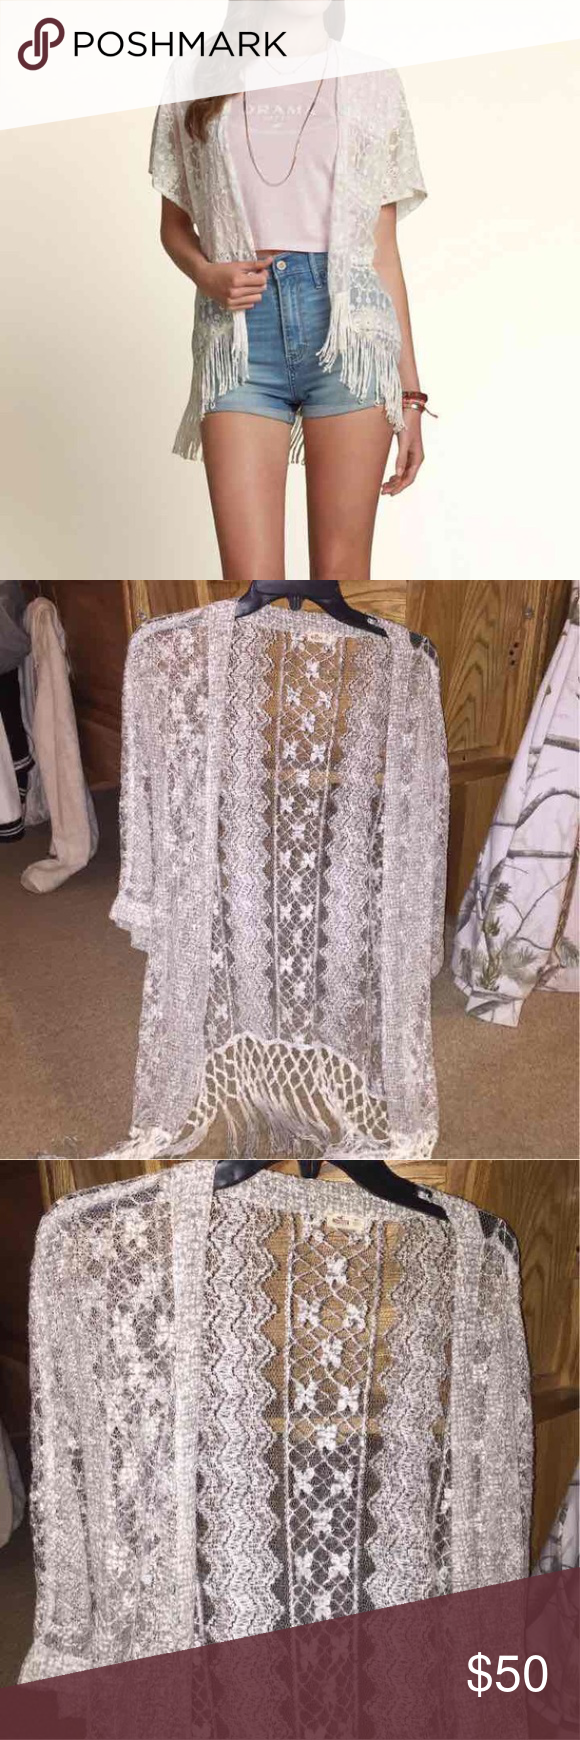 Hollister Gray/Silver Lace Fringe Cardigan Hollister Gray/Silver ...